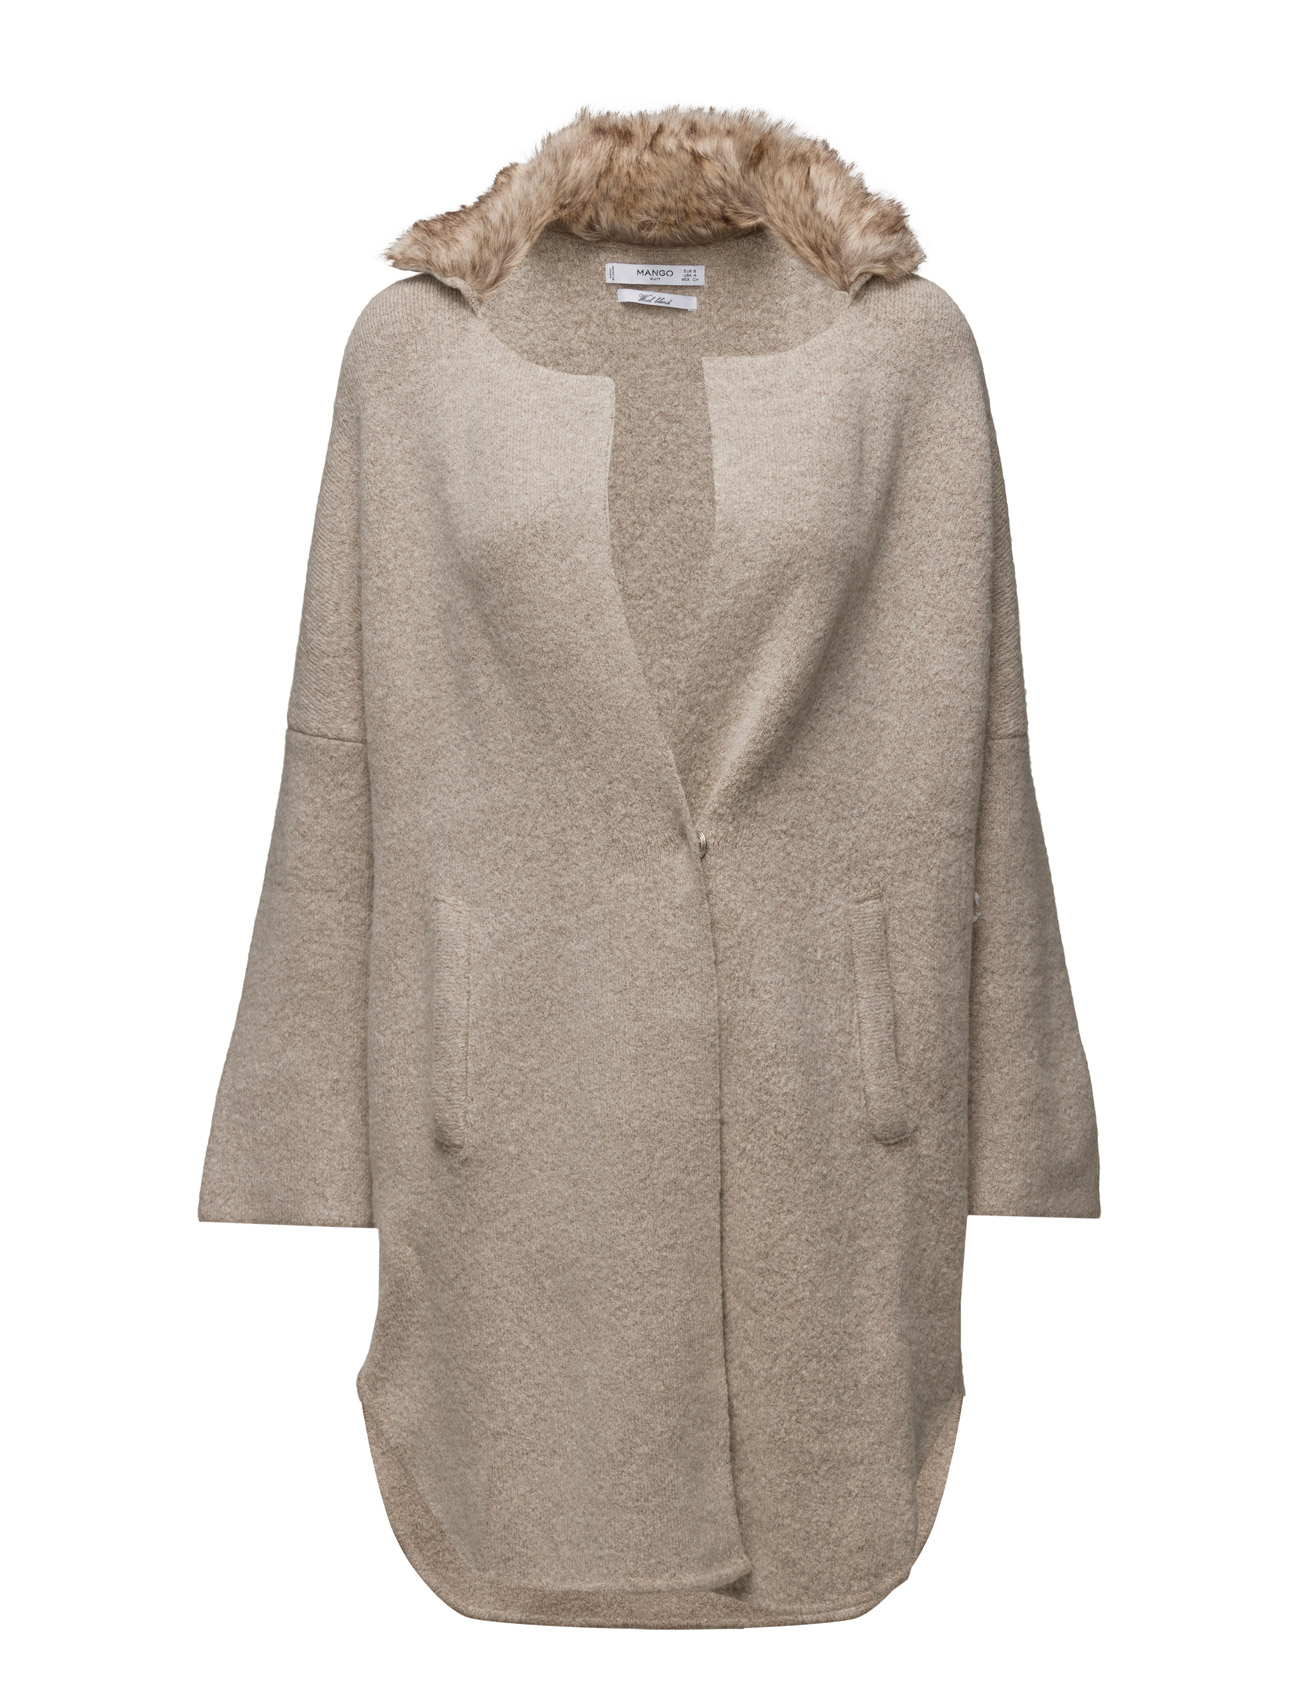 Faux-Fur Pockets Cardigan Mango Cardigans til Kvinder i Light Beige